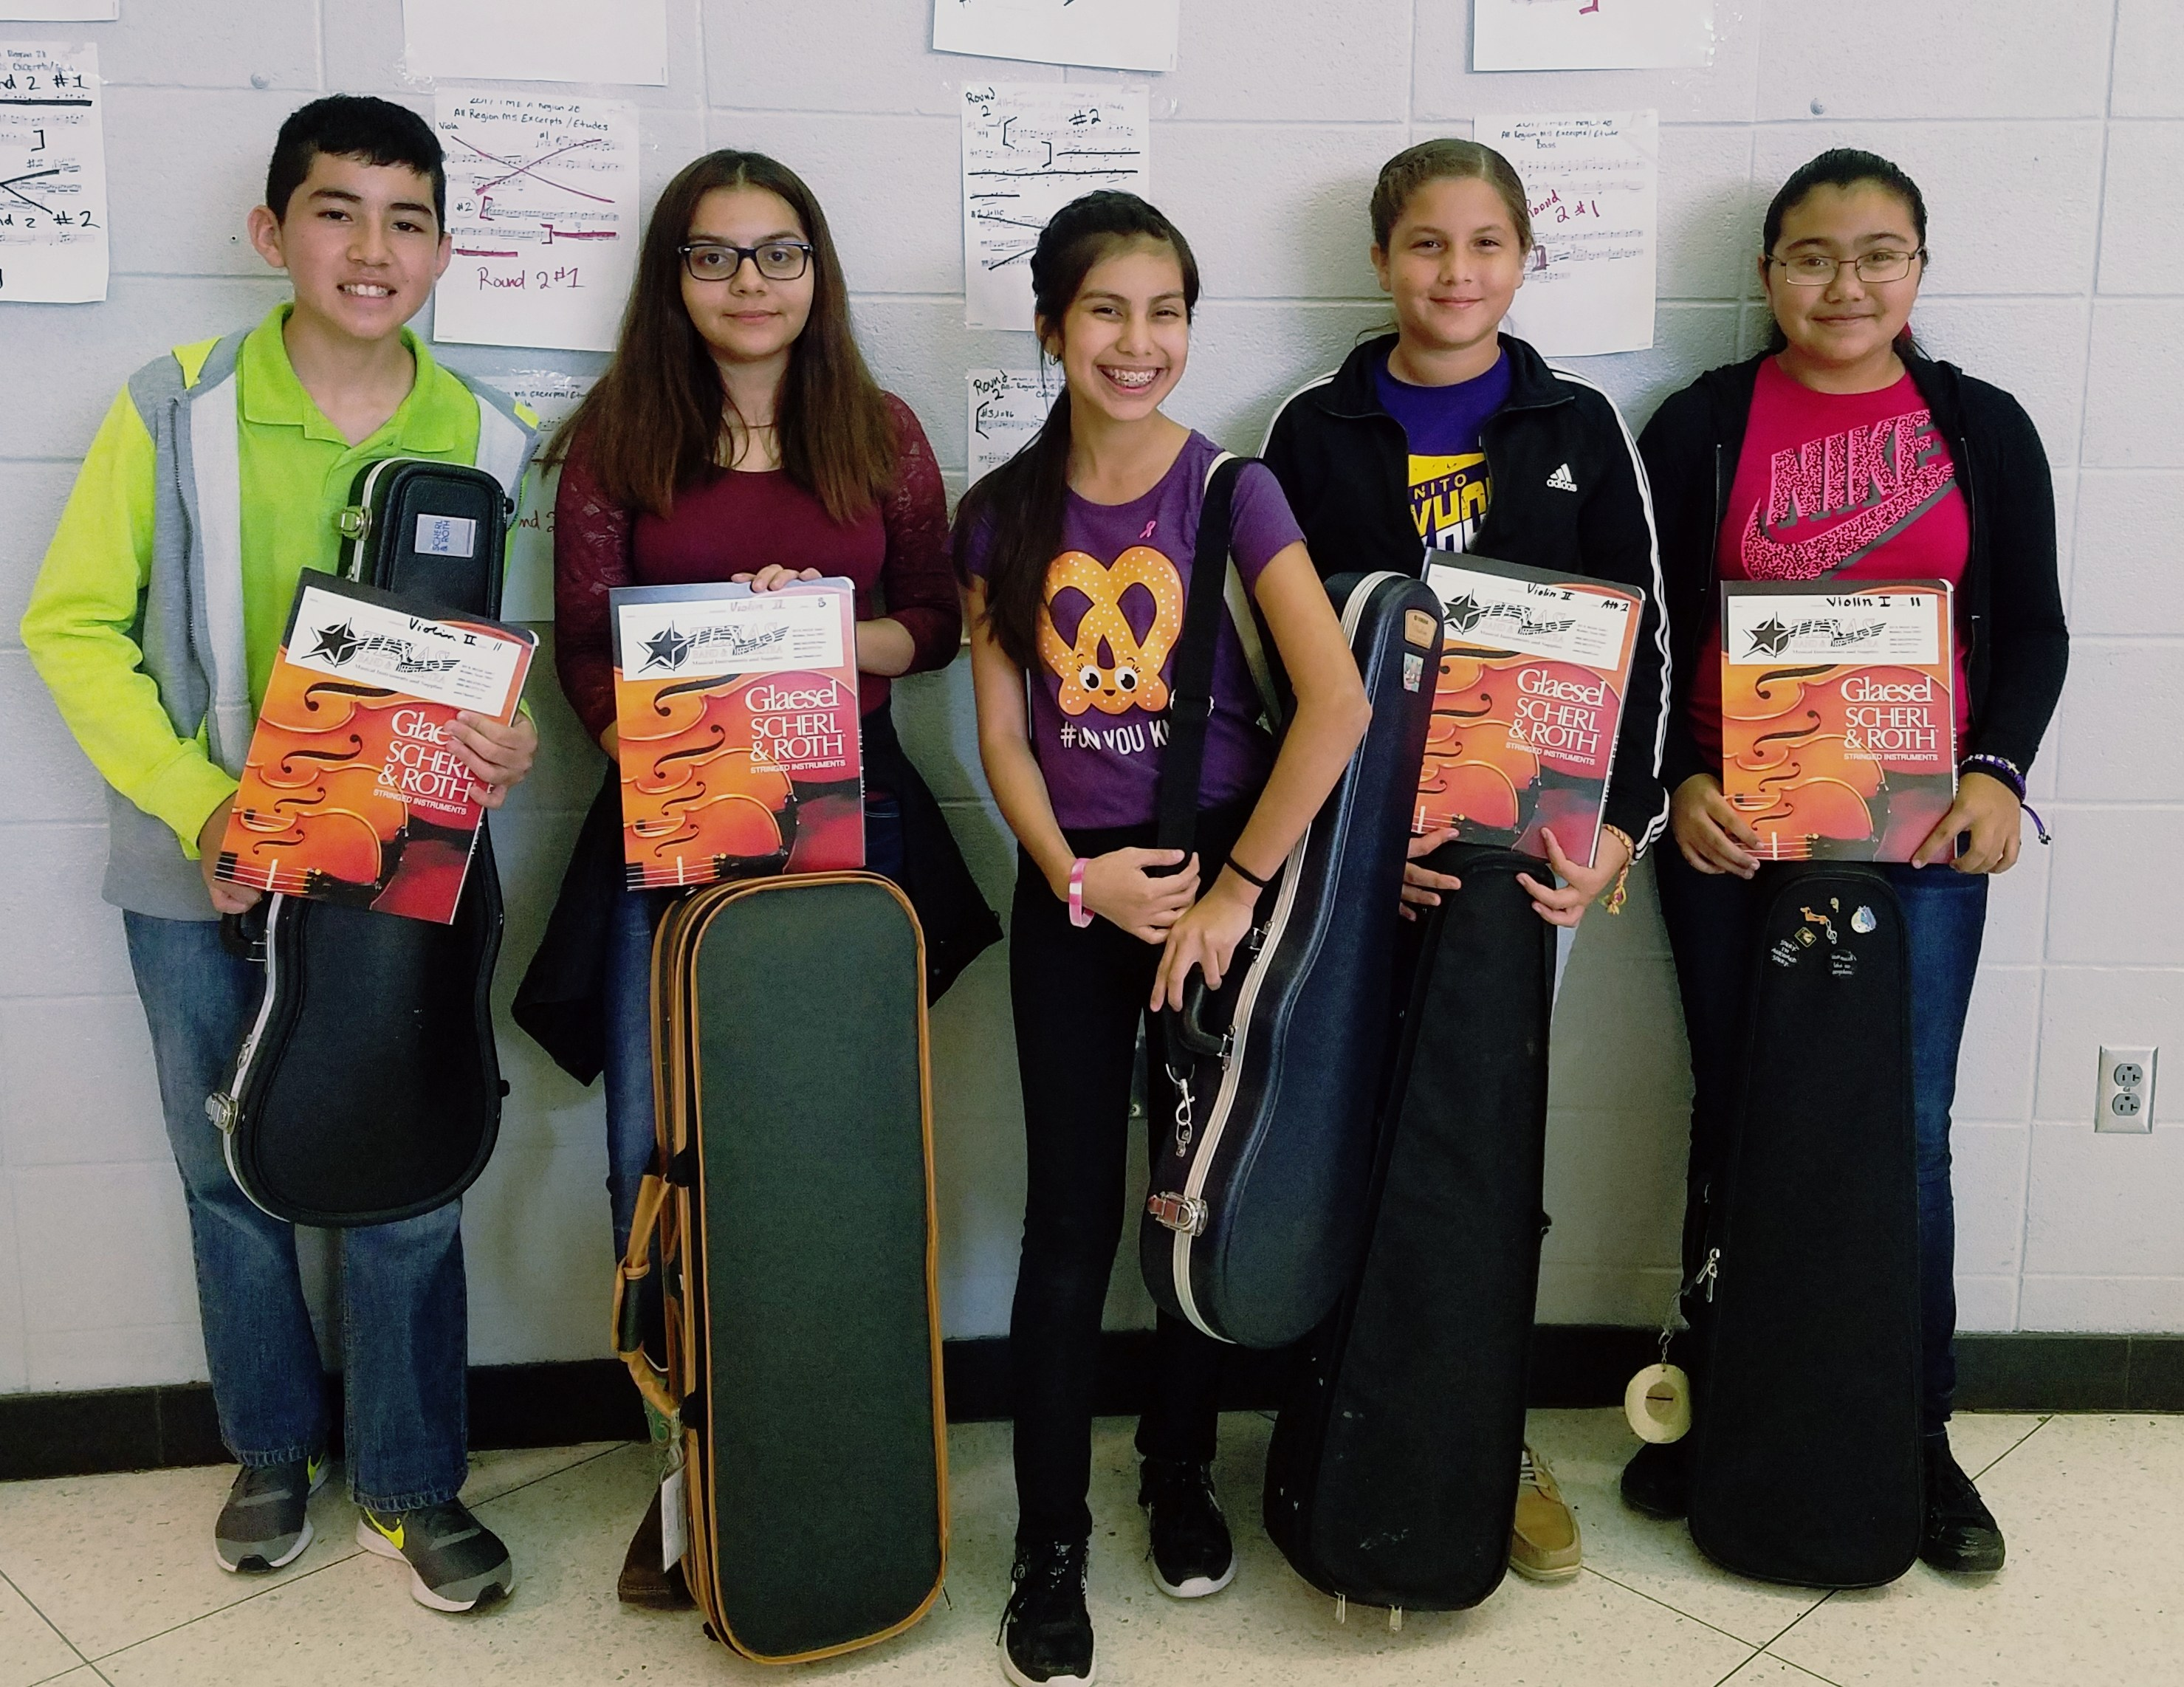 Orchestra students Israel Valdez, Kathy Rojas, Melissa Gonzalez, Cristian Rodriguez and Yarellie Rodriguez competed for All-Region placement.